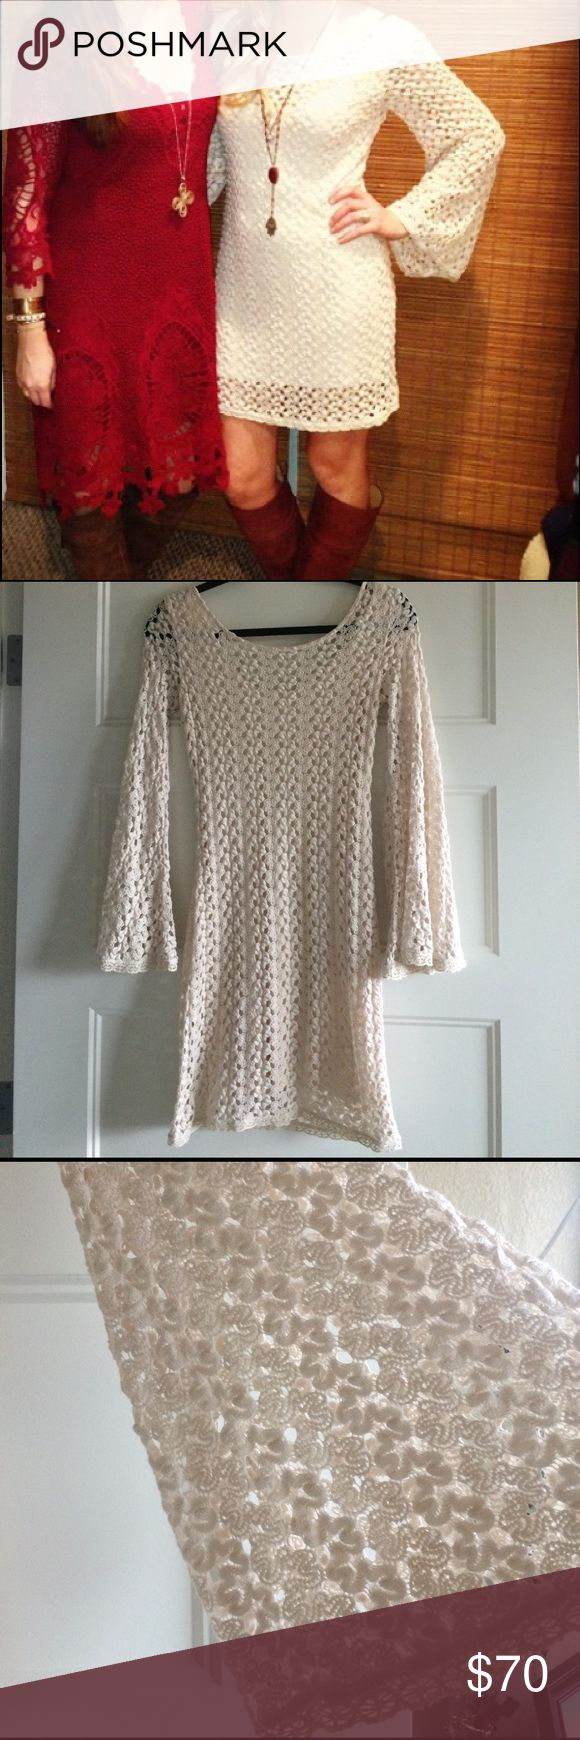 Free people crochet dress Free people crochet cream dress.  This dress is adorable and so fun to wear.  Great for concerts, a night out or dinner on the town.  Lightly worn and in great condition. Free People Dresses